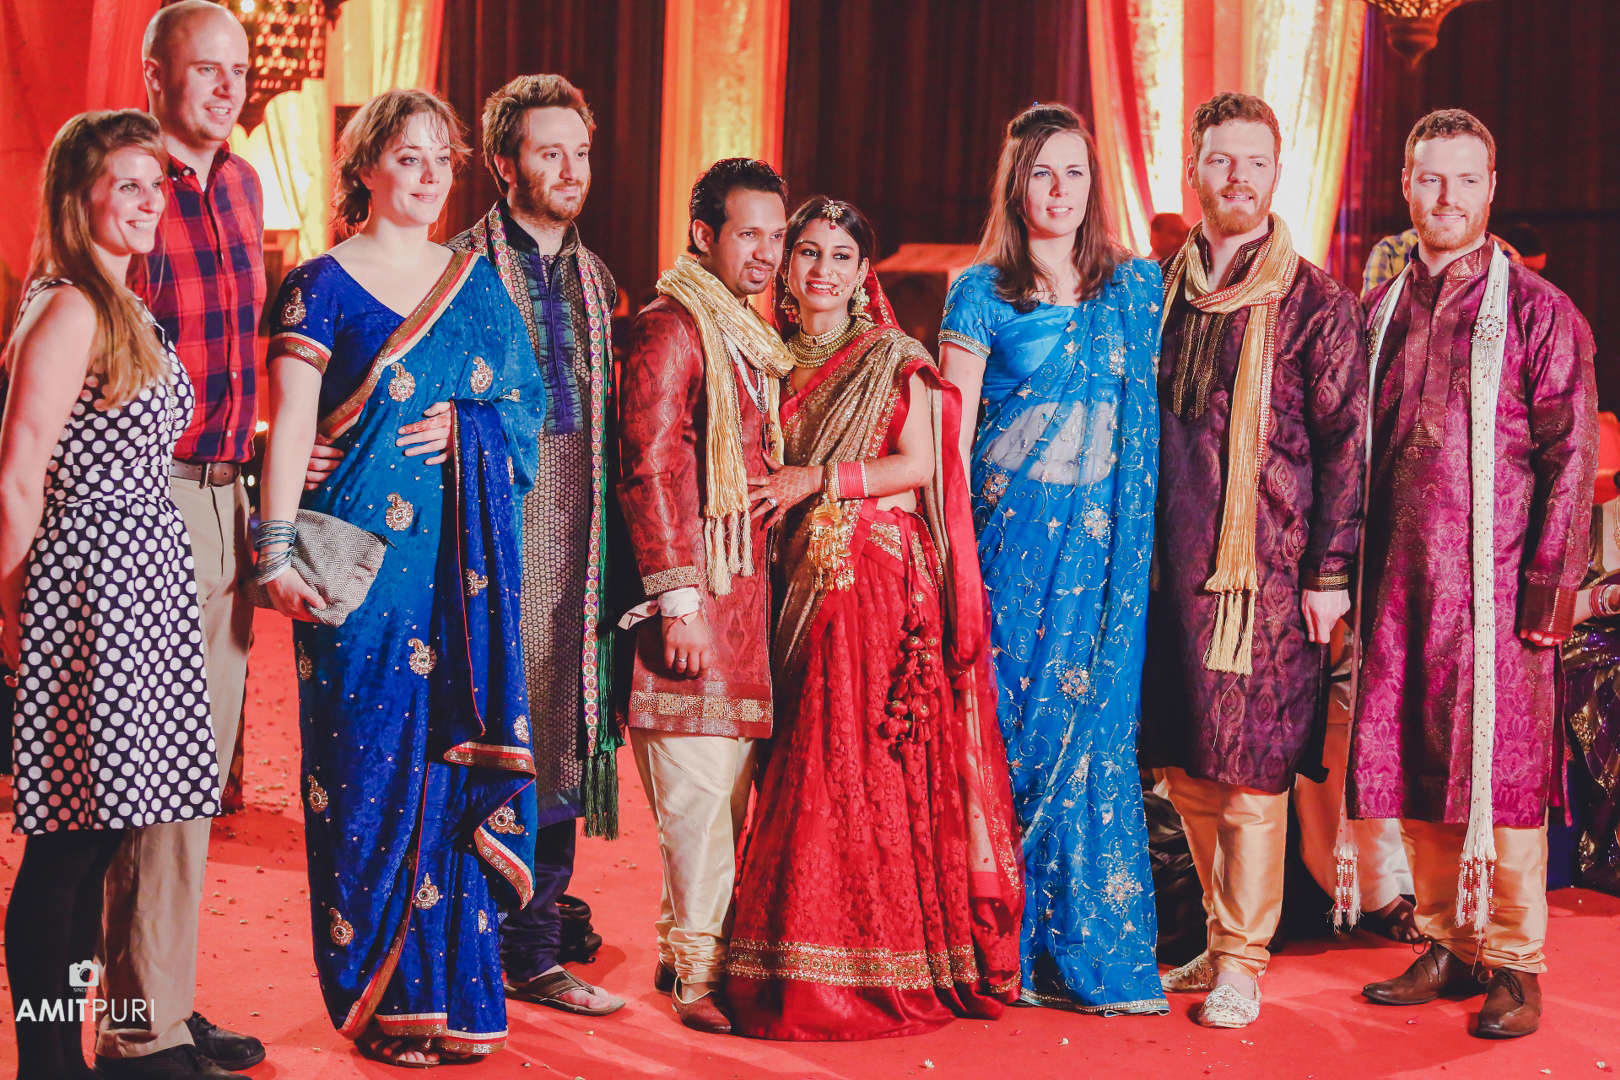 wedding couple with friends:amit puri photography